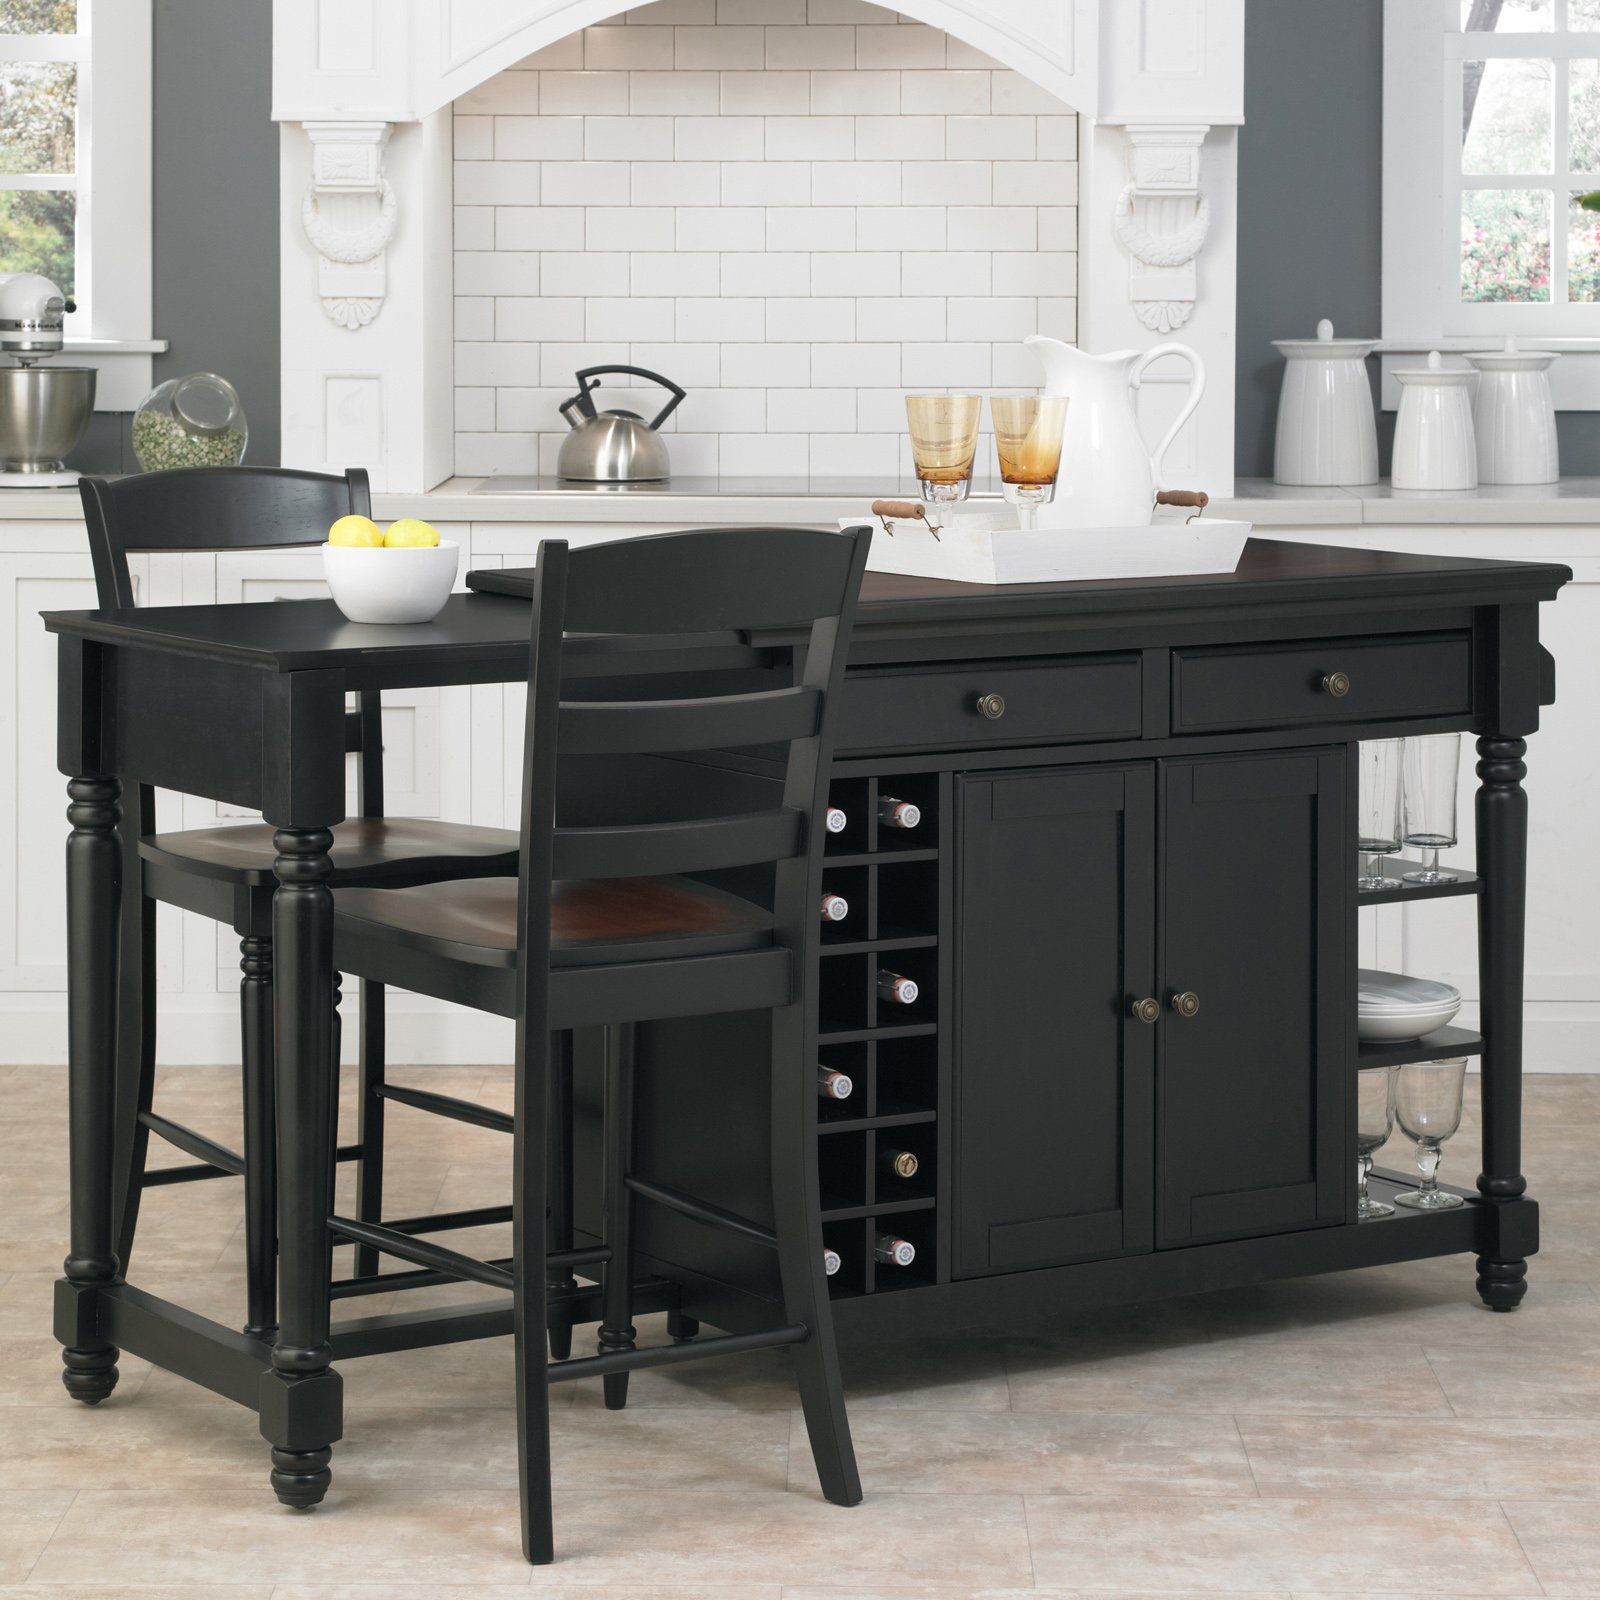 Home Styles Grand Torino 3 piece Kitchen Island & Stools Set - 5012 ...